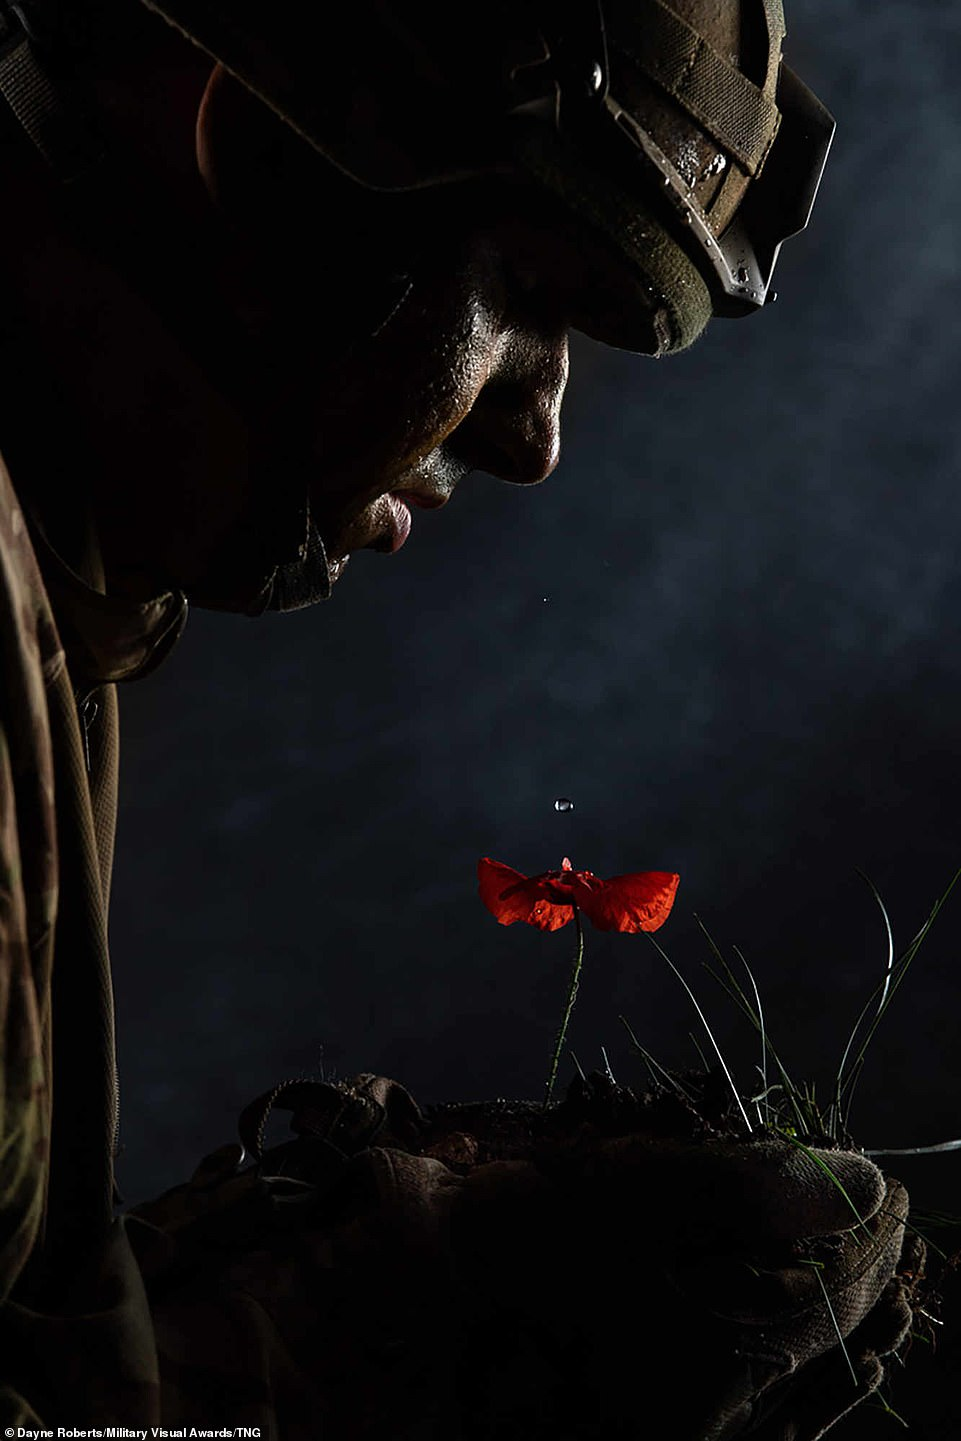 Another British entry came from Dayne Roberts, in the Illustrative category, which depicts a Corporal holding a poppy in the dead of night as he sheds a tear remembering the all solders that come before him